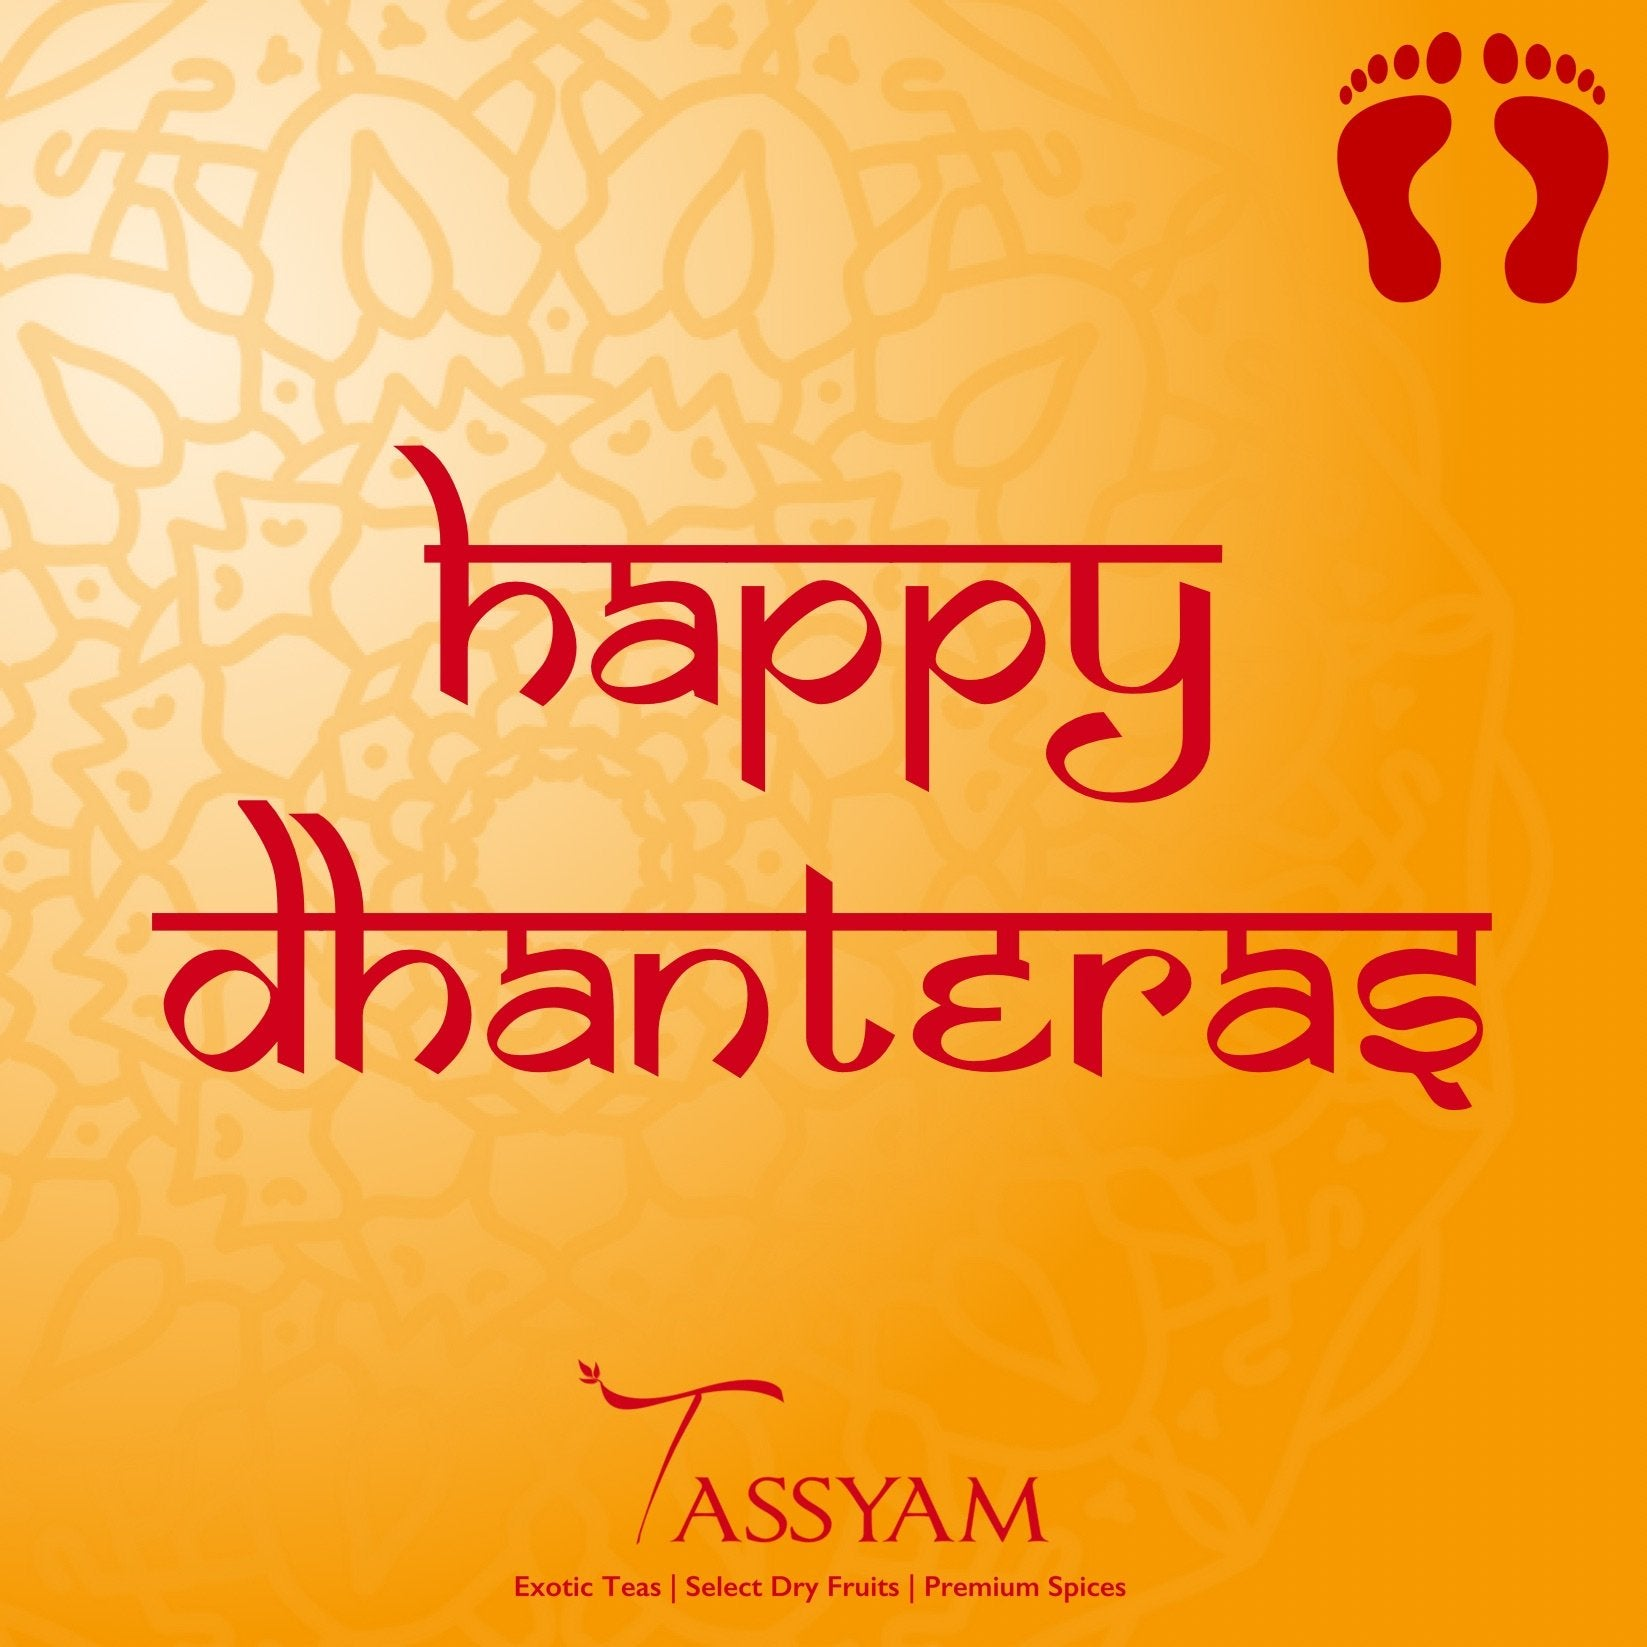 This Dhanteras Invest in Your Health At Tassyam